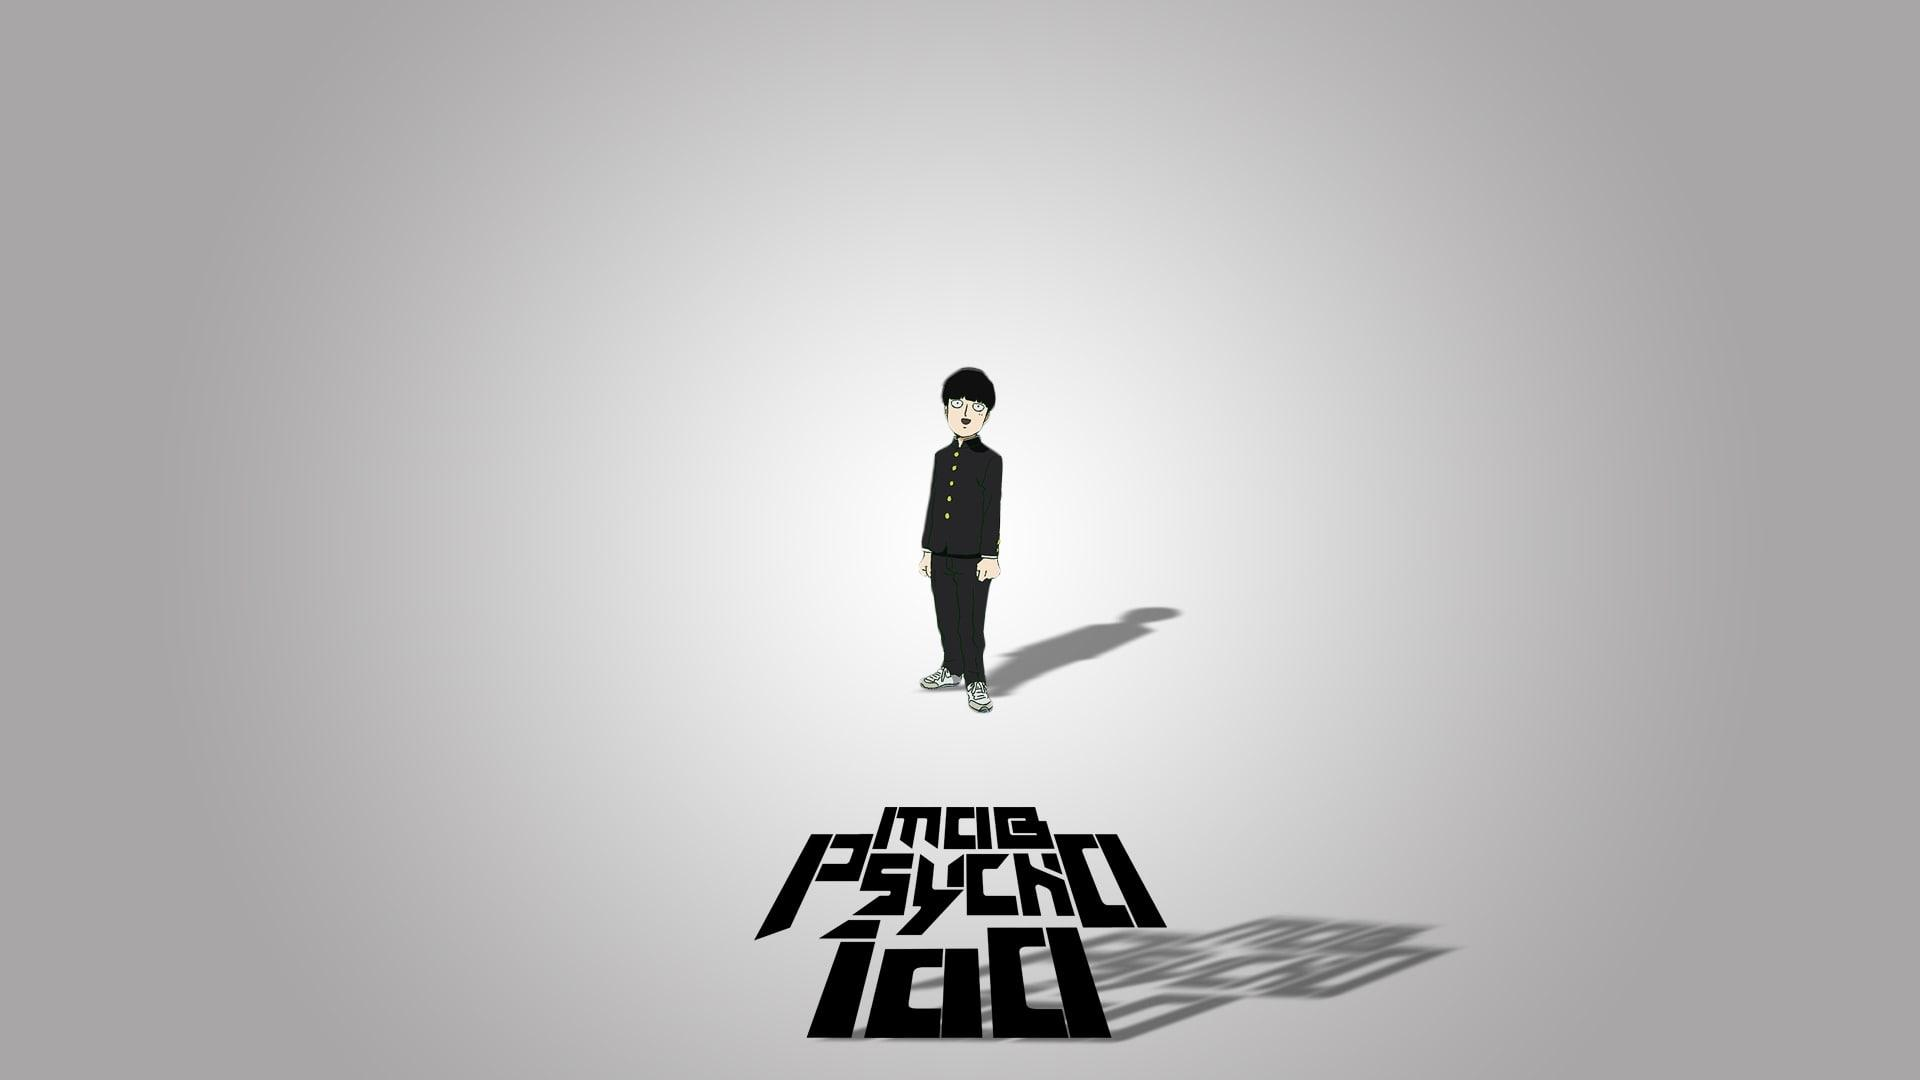 HD wallpaper: Anime, Mob Psycho 100, Shigeo Kageyama, full length